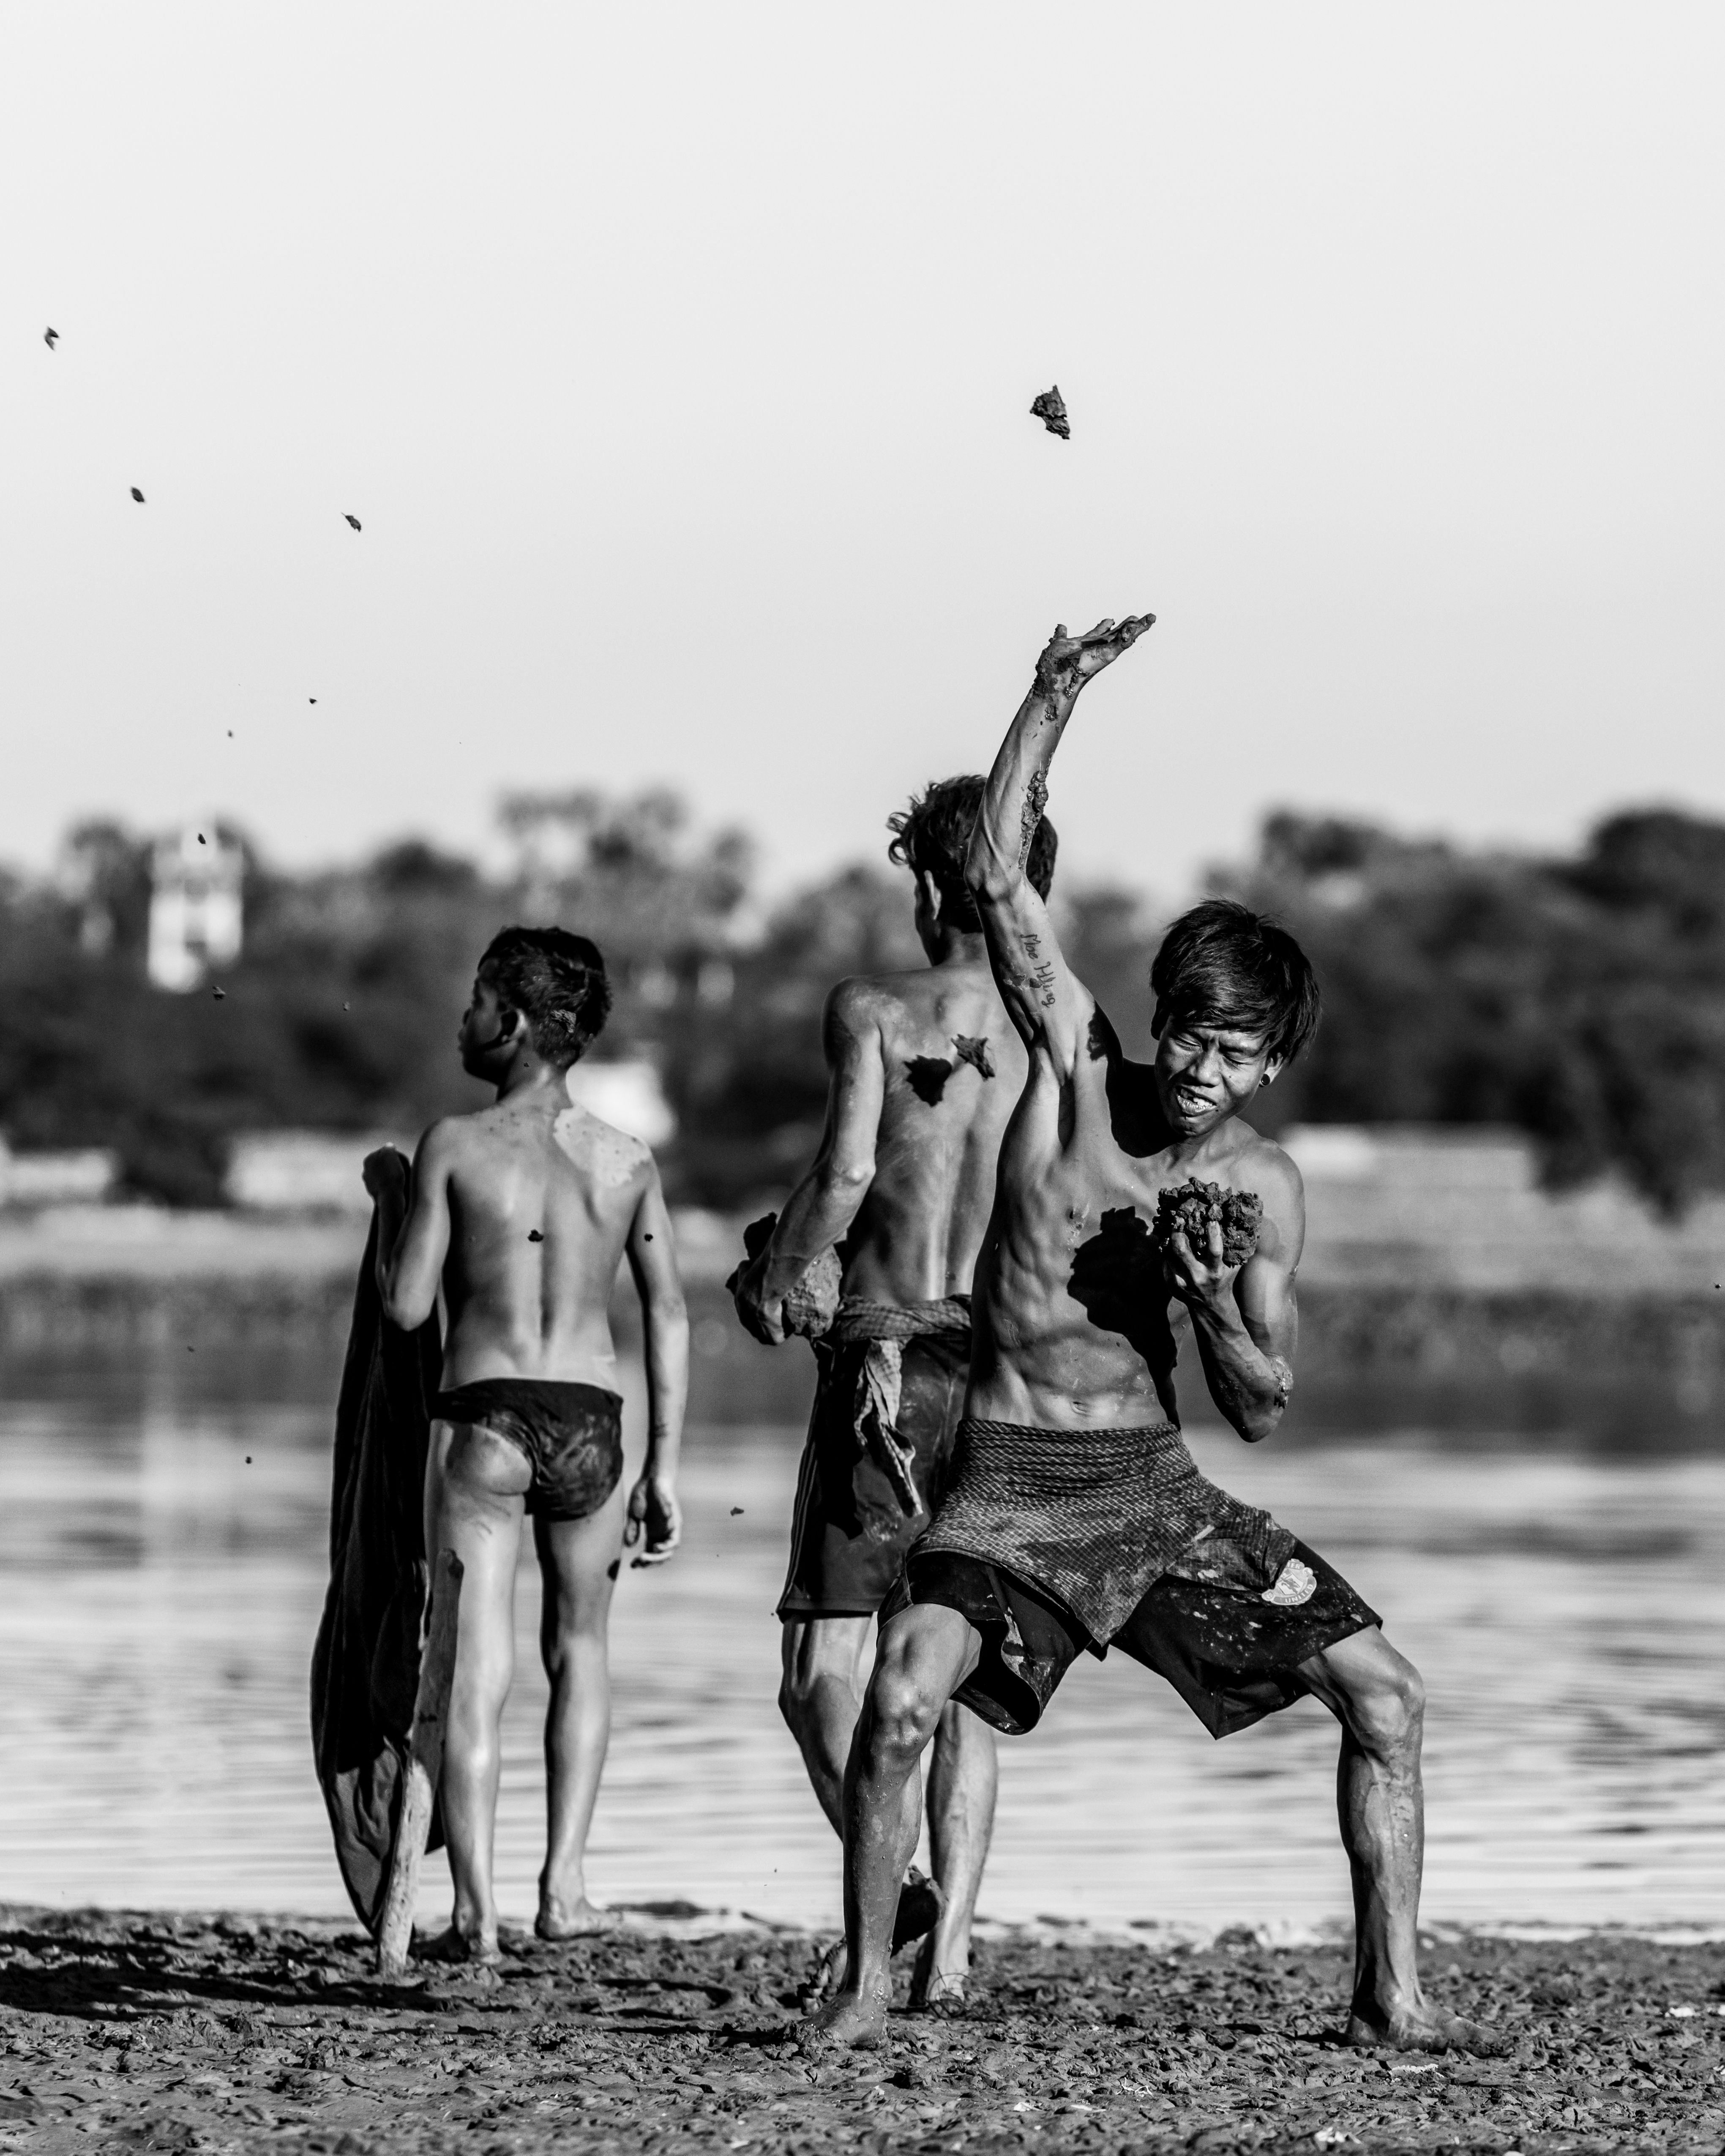 teens playing in mud on the beach